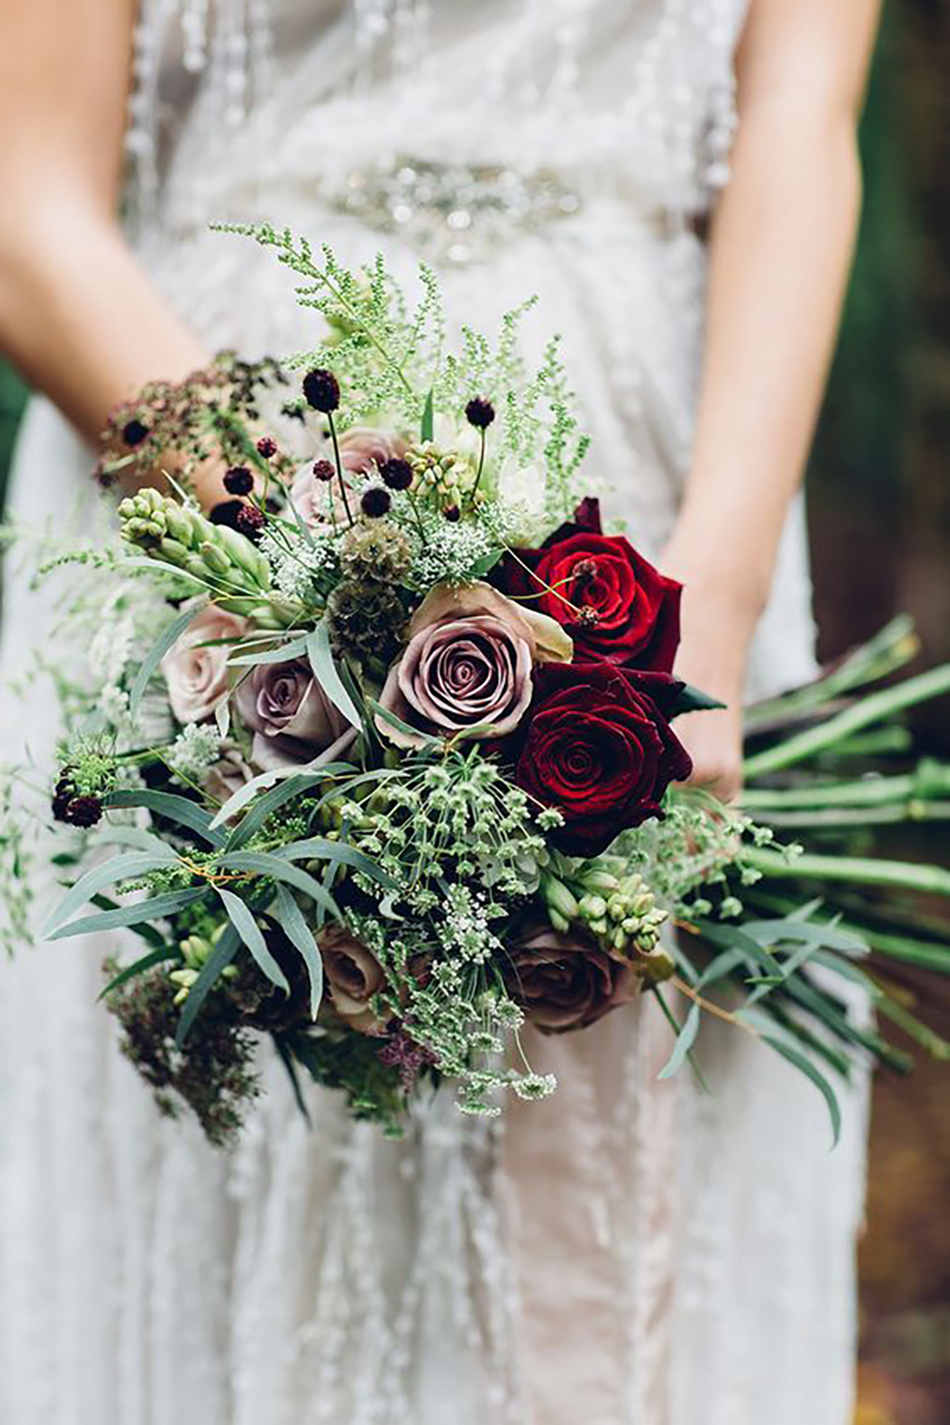 Wedding ideas by colour: red wedding accessories